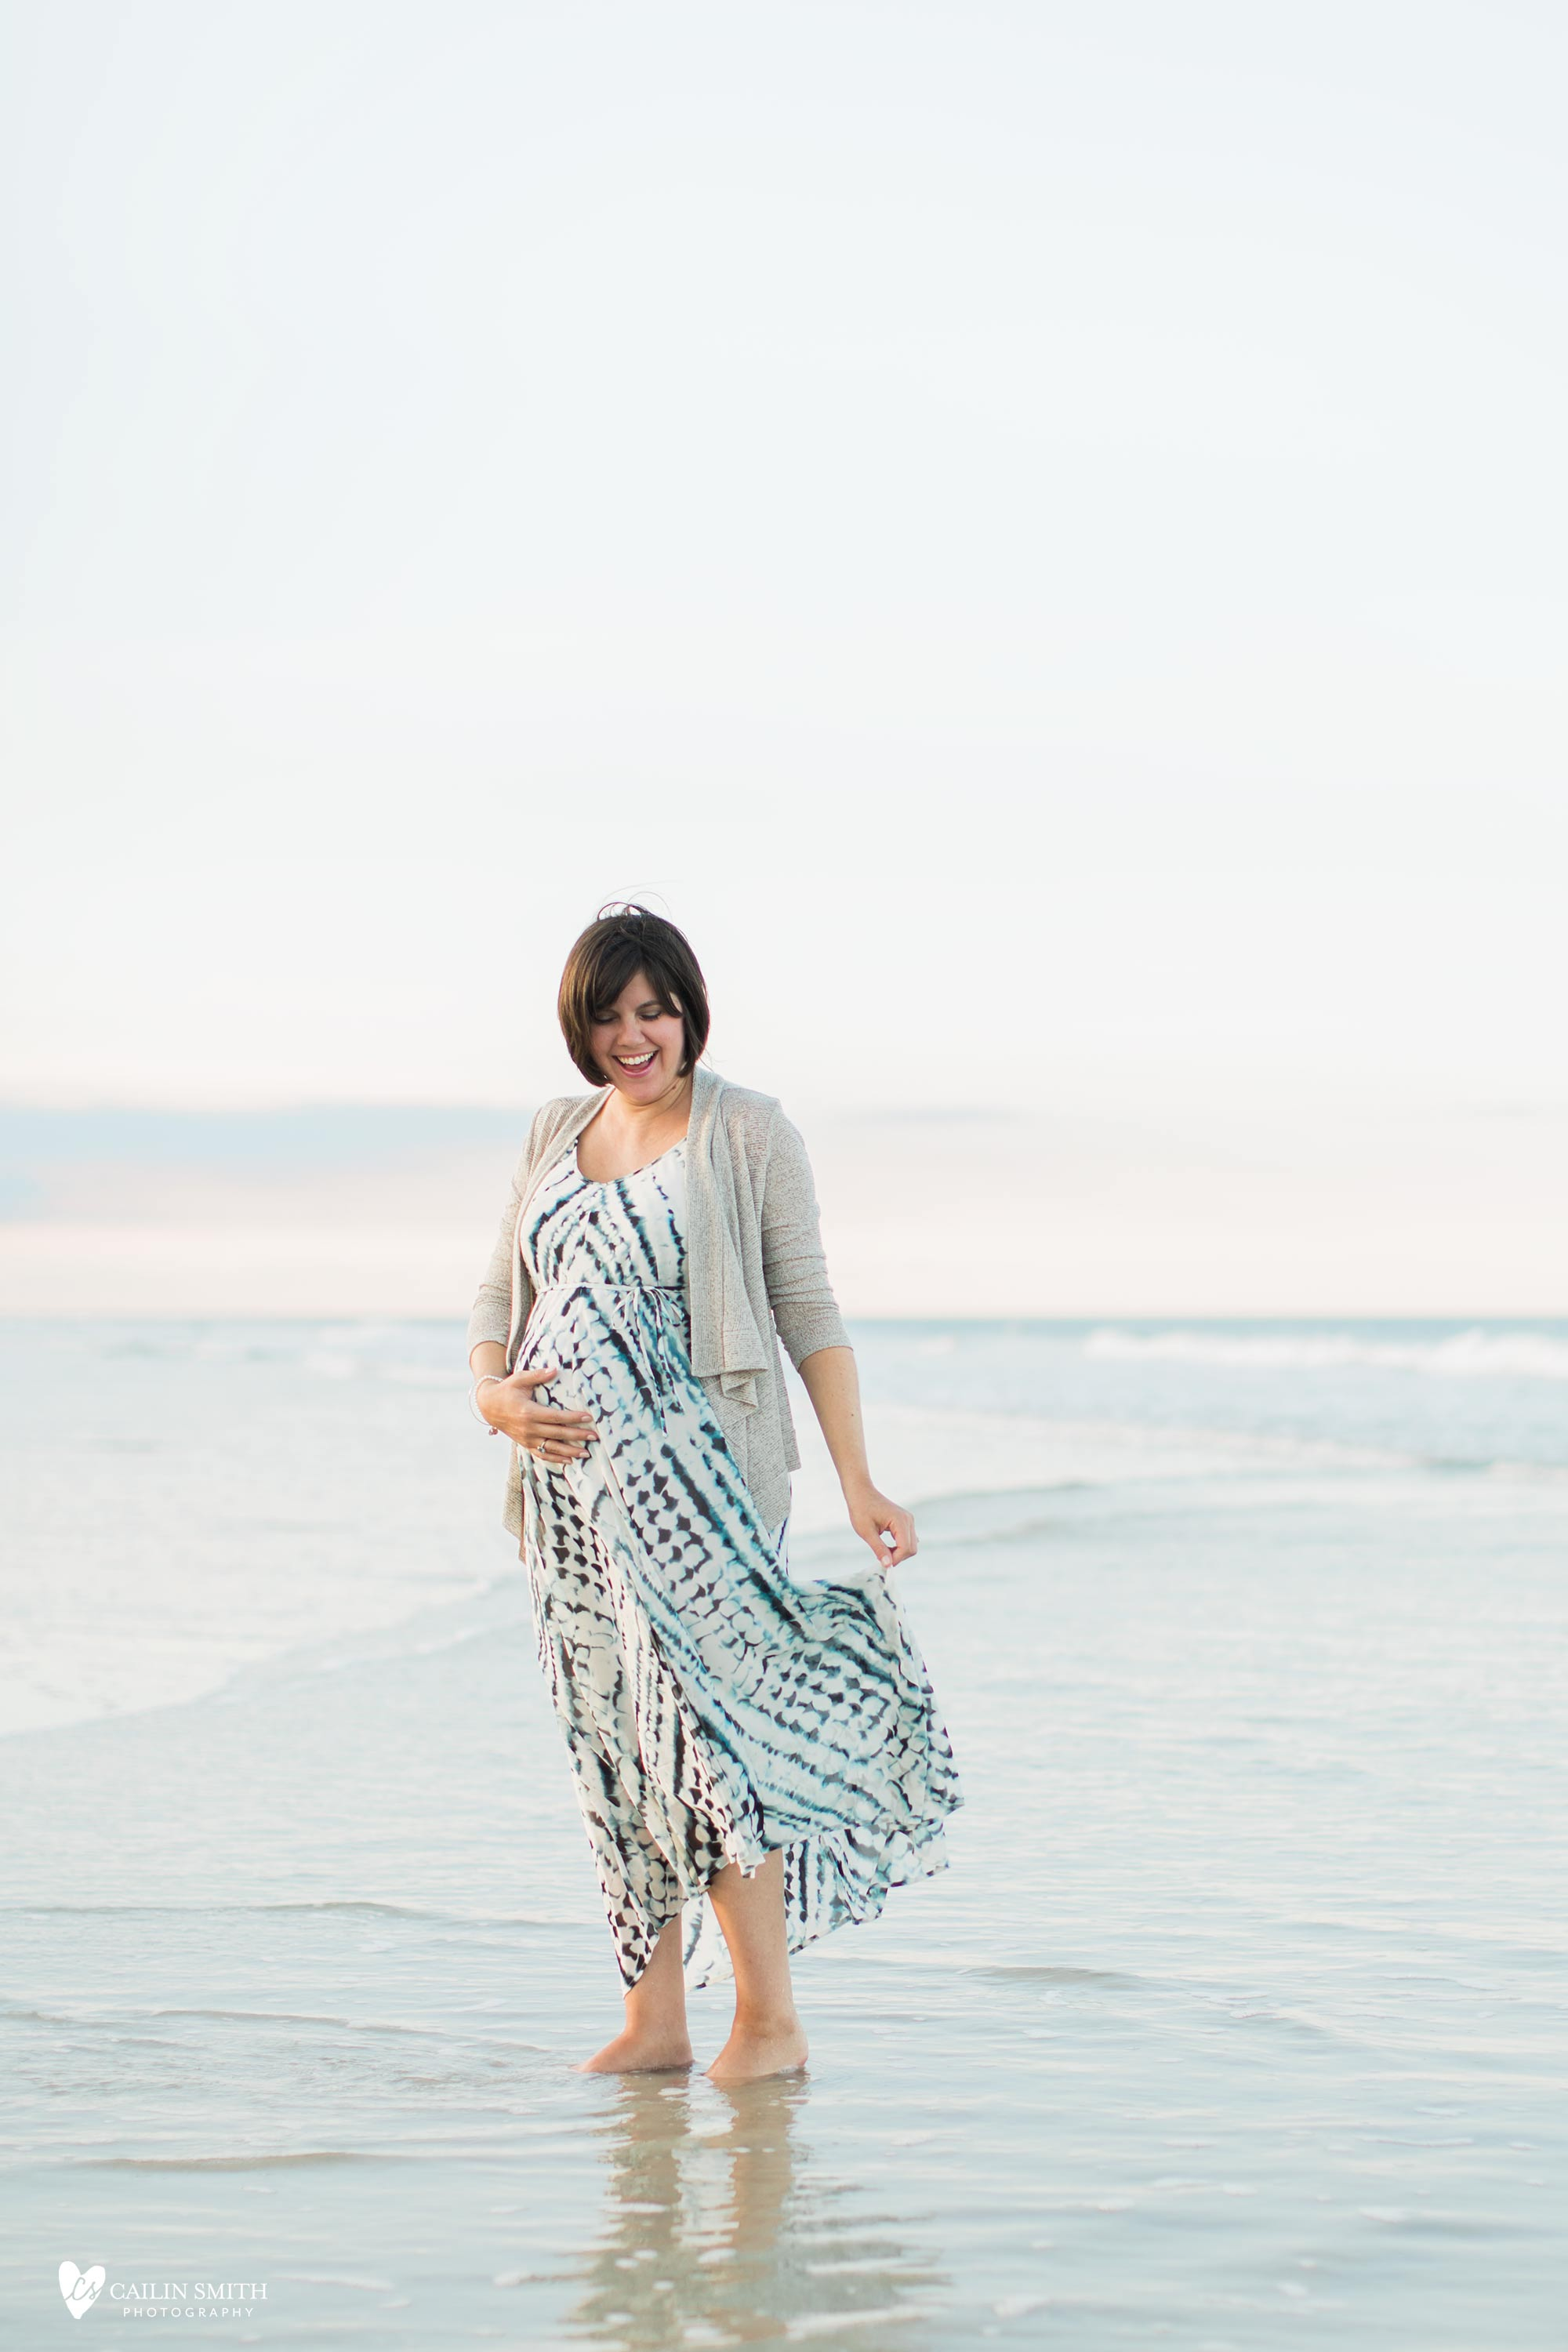 Kelly_Jeff_Maternity_Blog_009.jpg